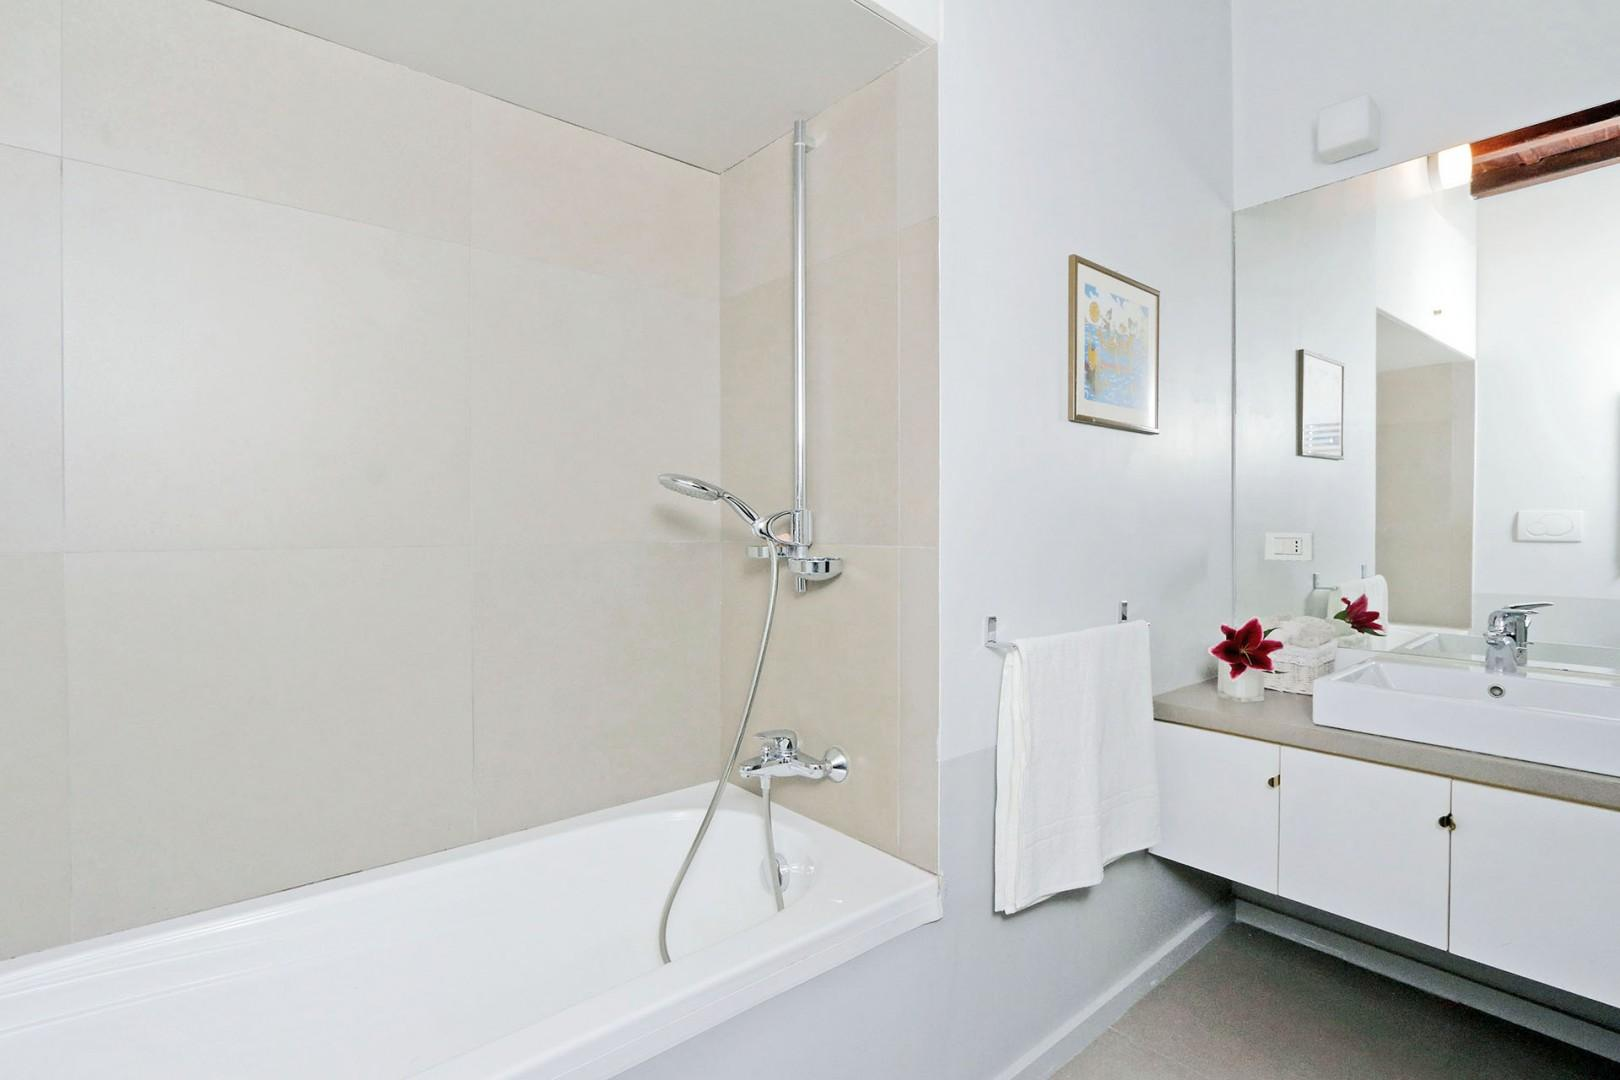 All 3 en suite bathrooms are modern and comfortable, with a shower or tub and heated towel racks.